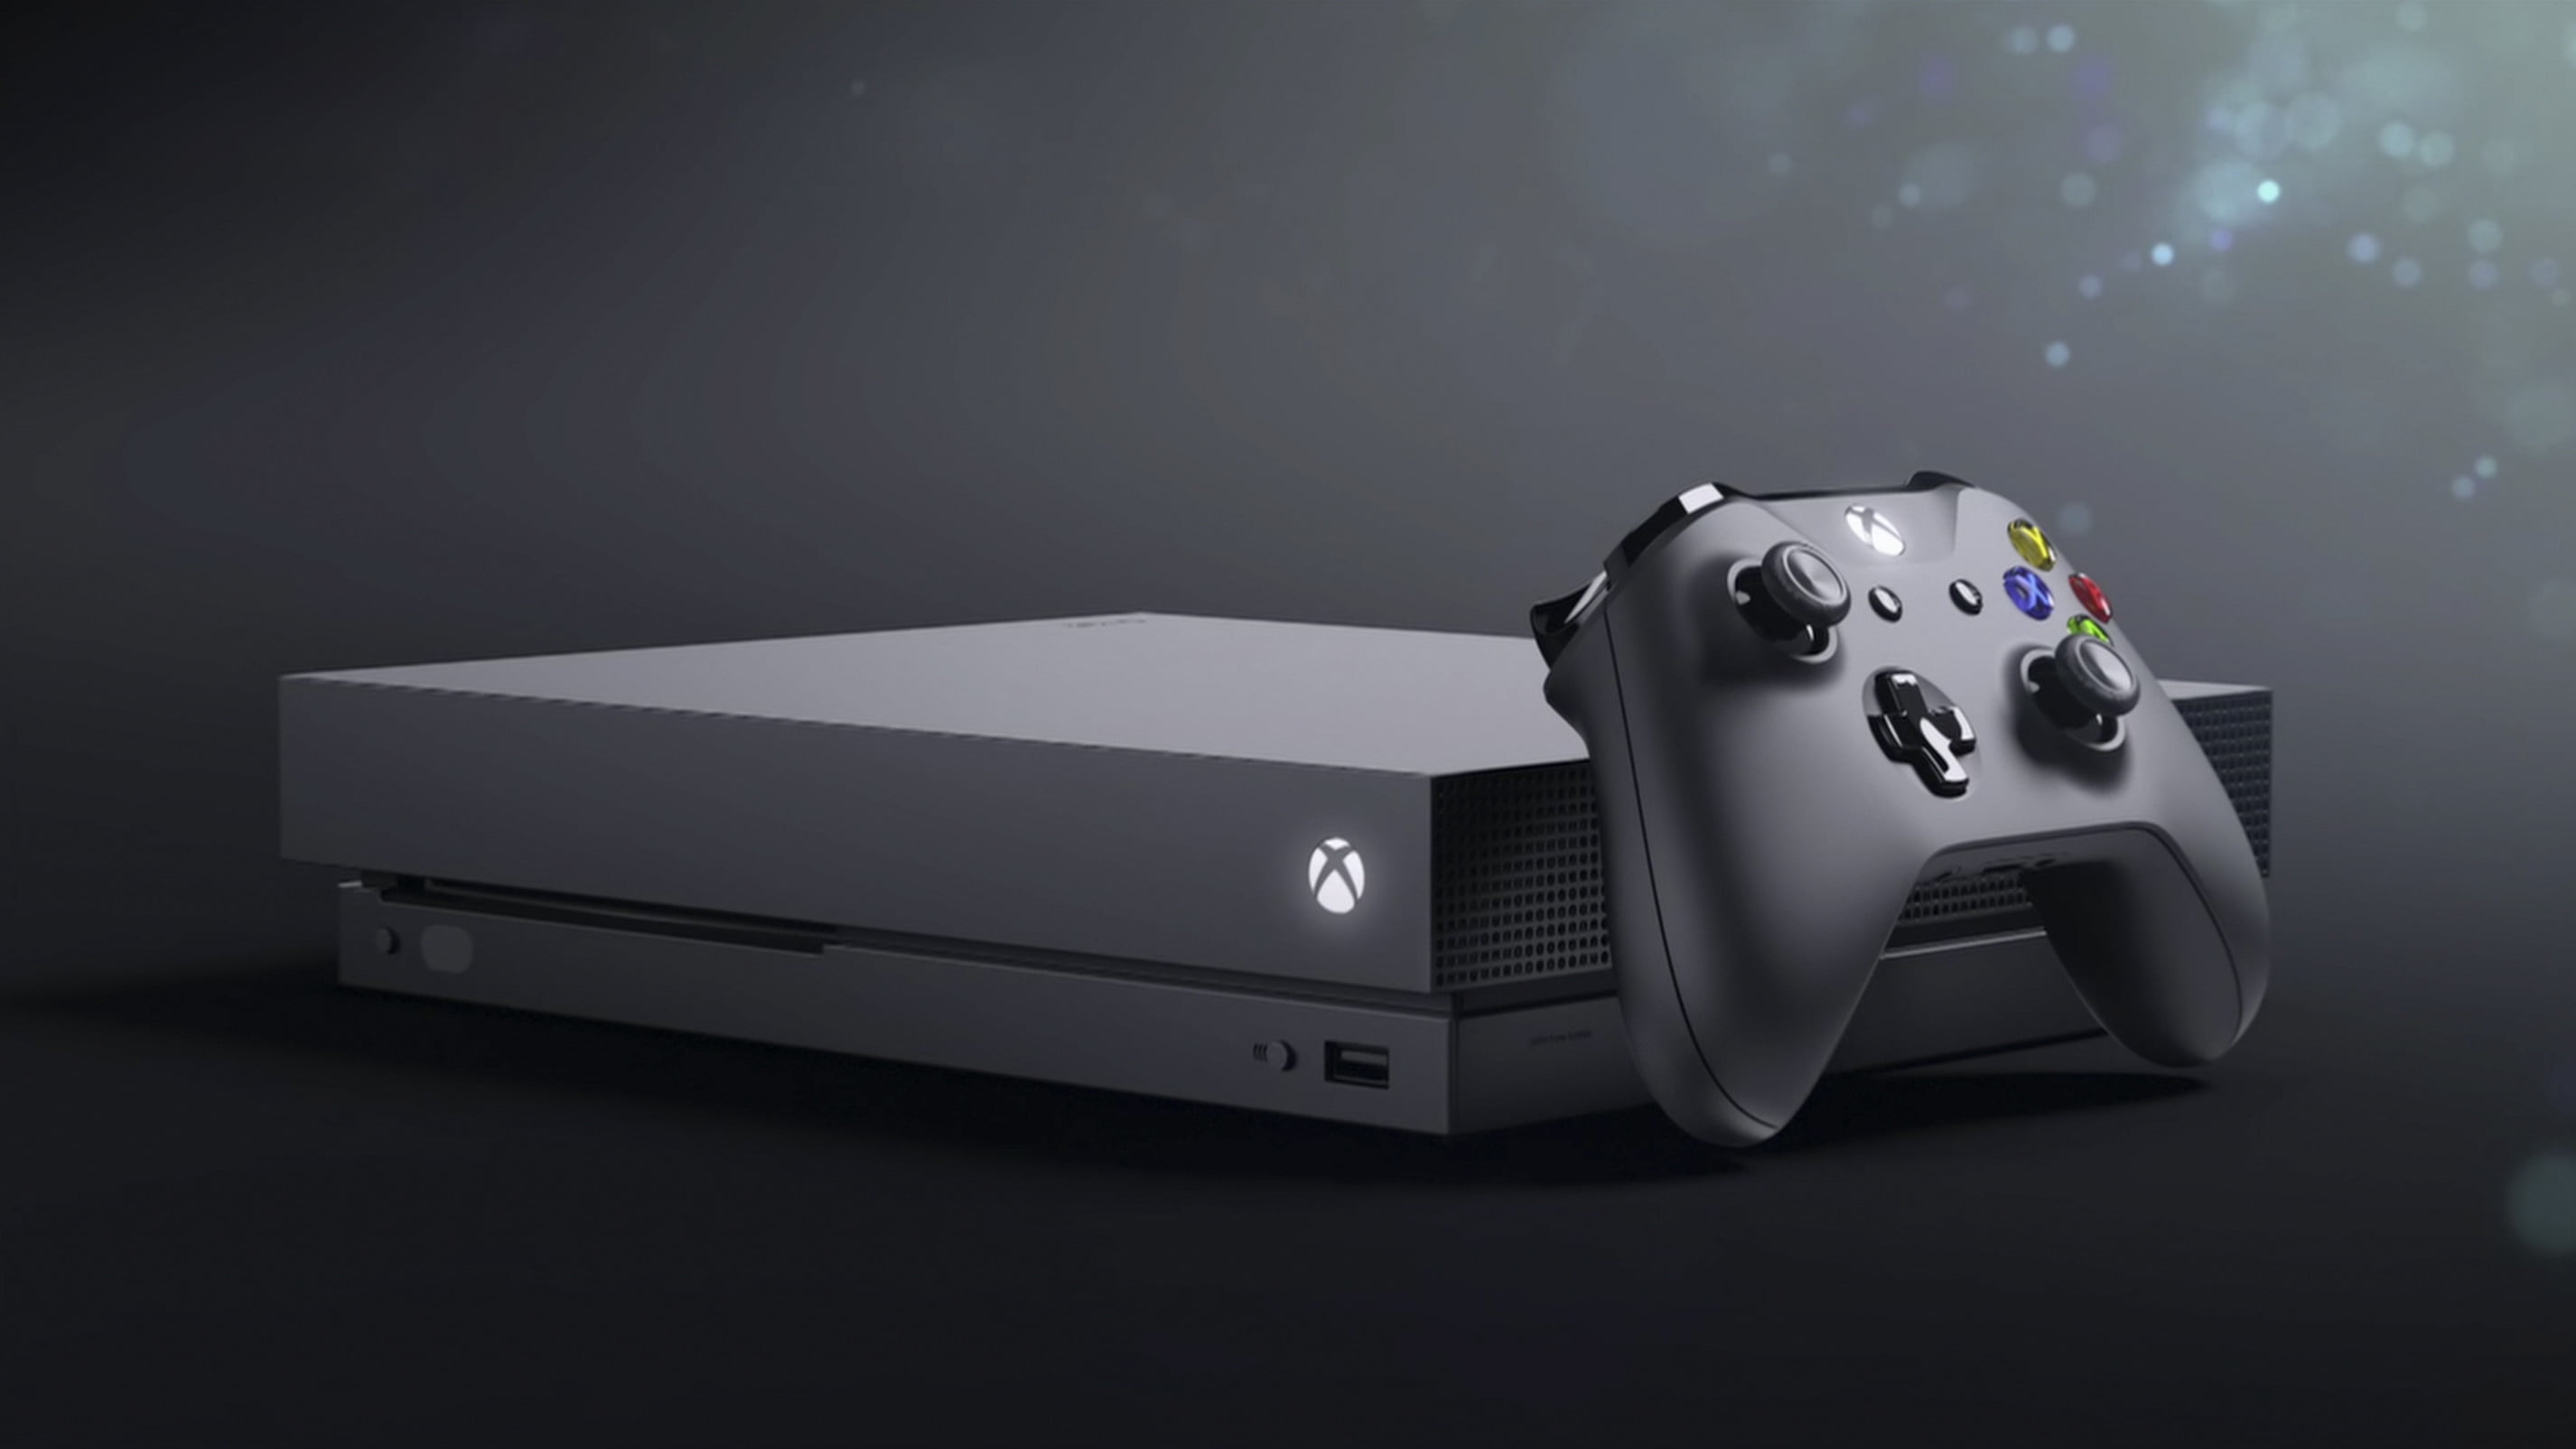 xbox one x announced screen shot 2017 06 11 at 2 03 12 pm